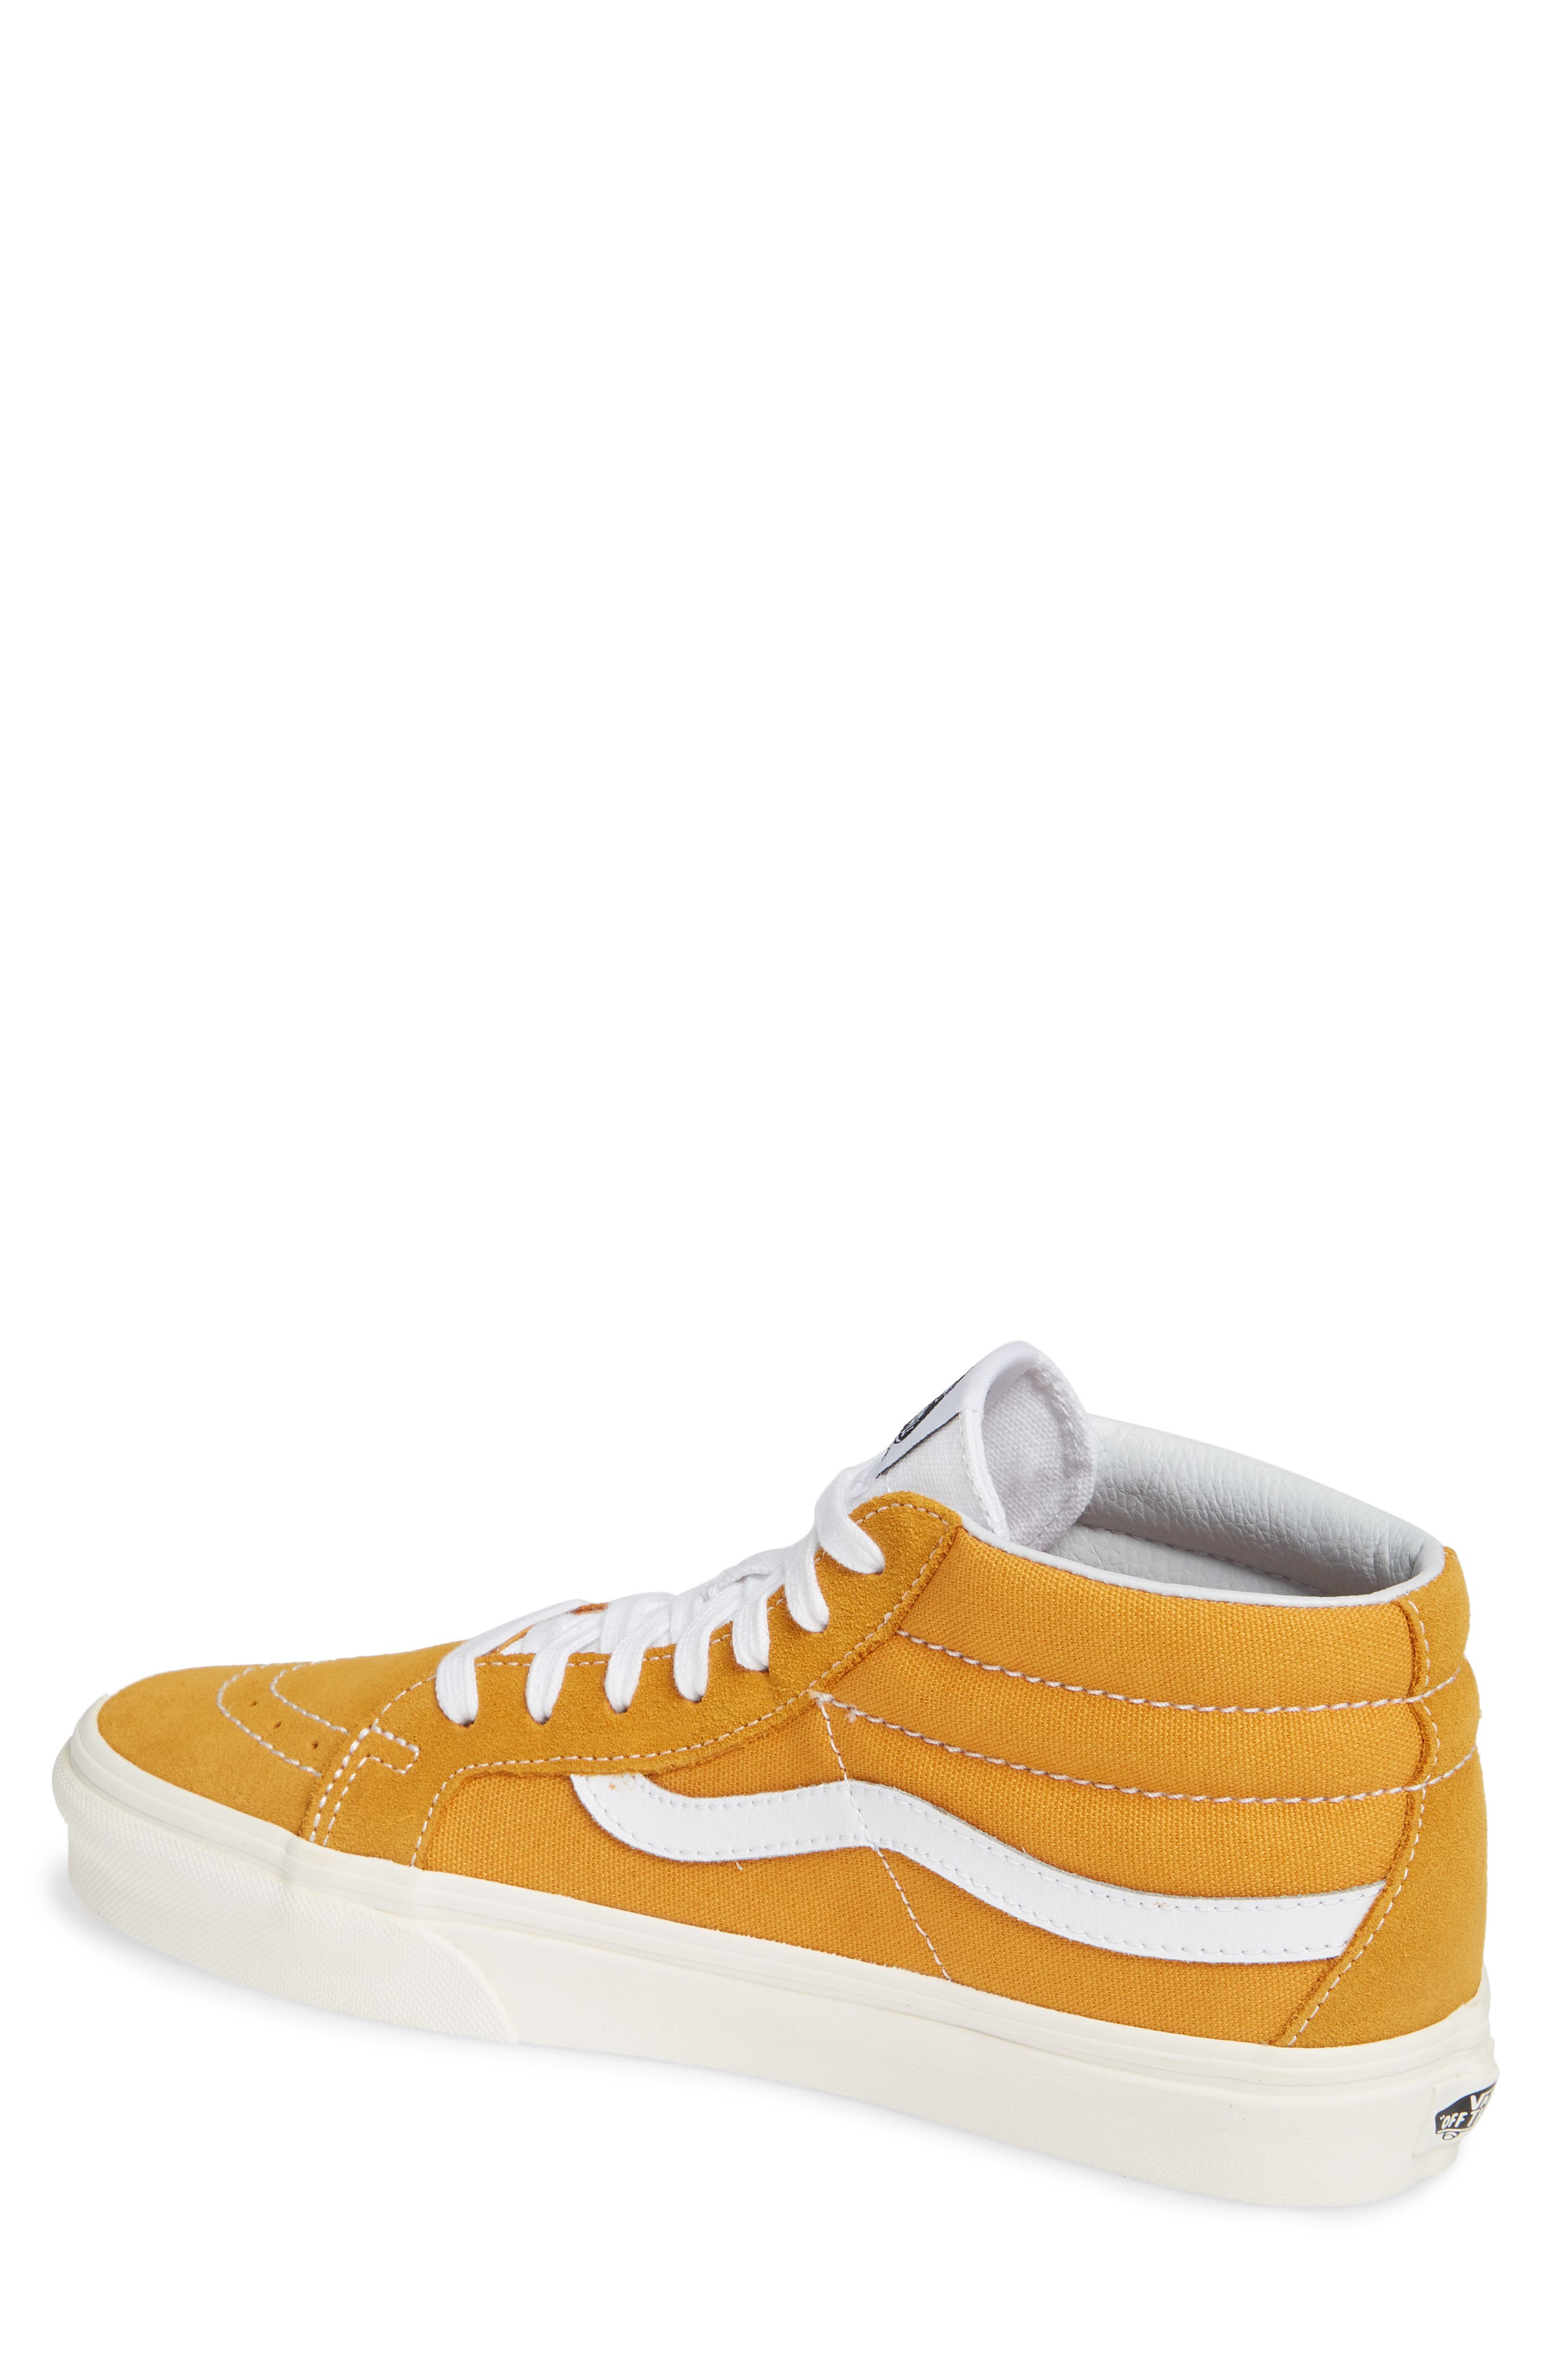 Sk8-Mid Reissue Sneaker,                             Alternate thumbnail 2, color,                             SUNFLOWER CANVAS/SUEDE